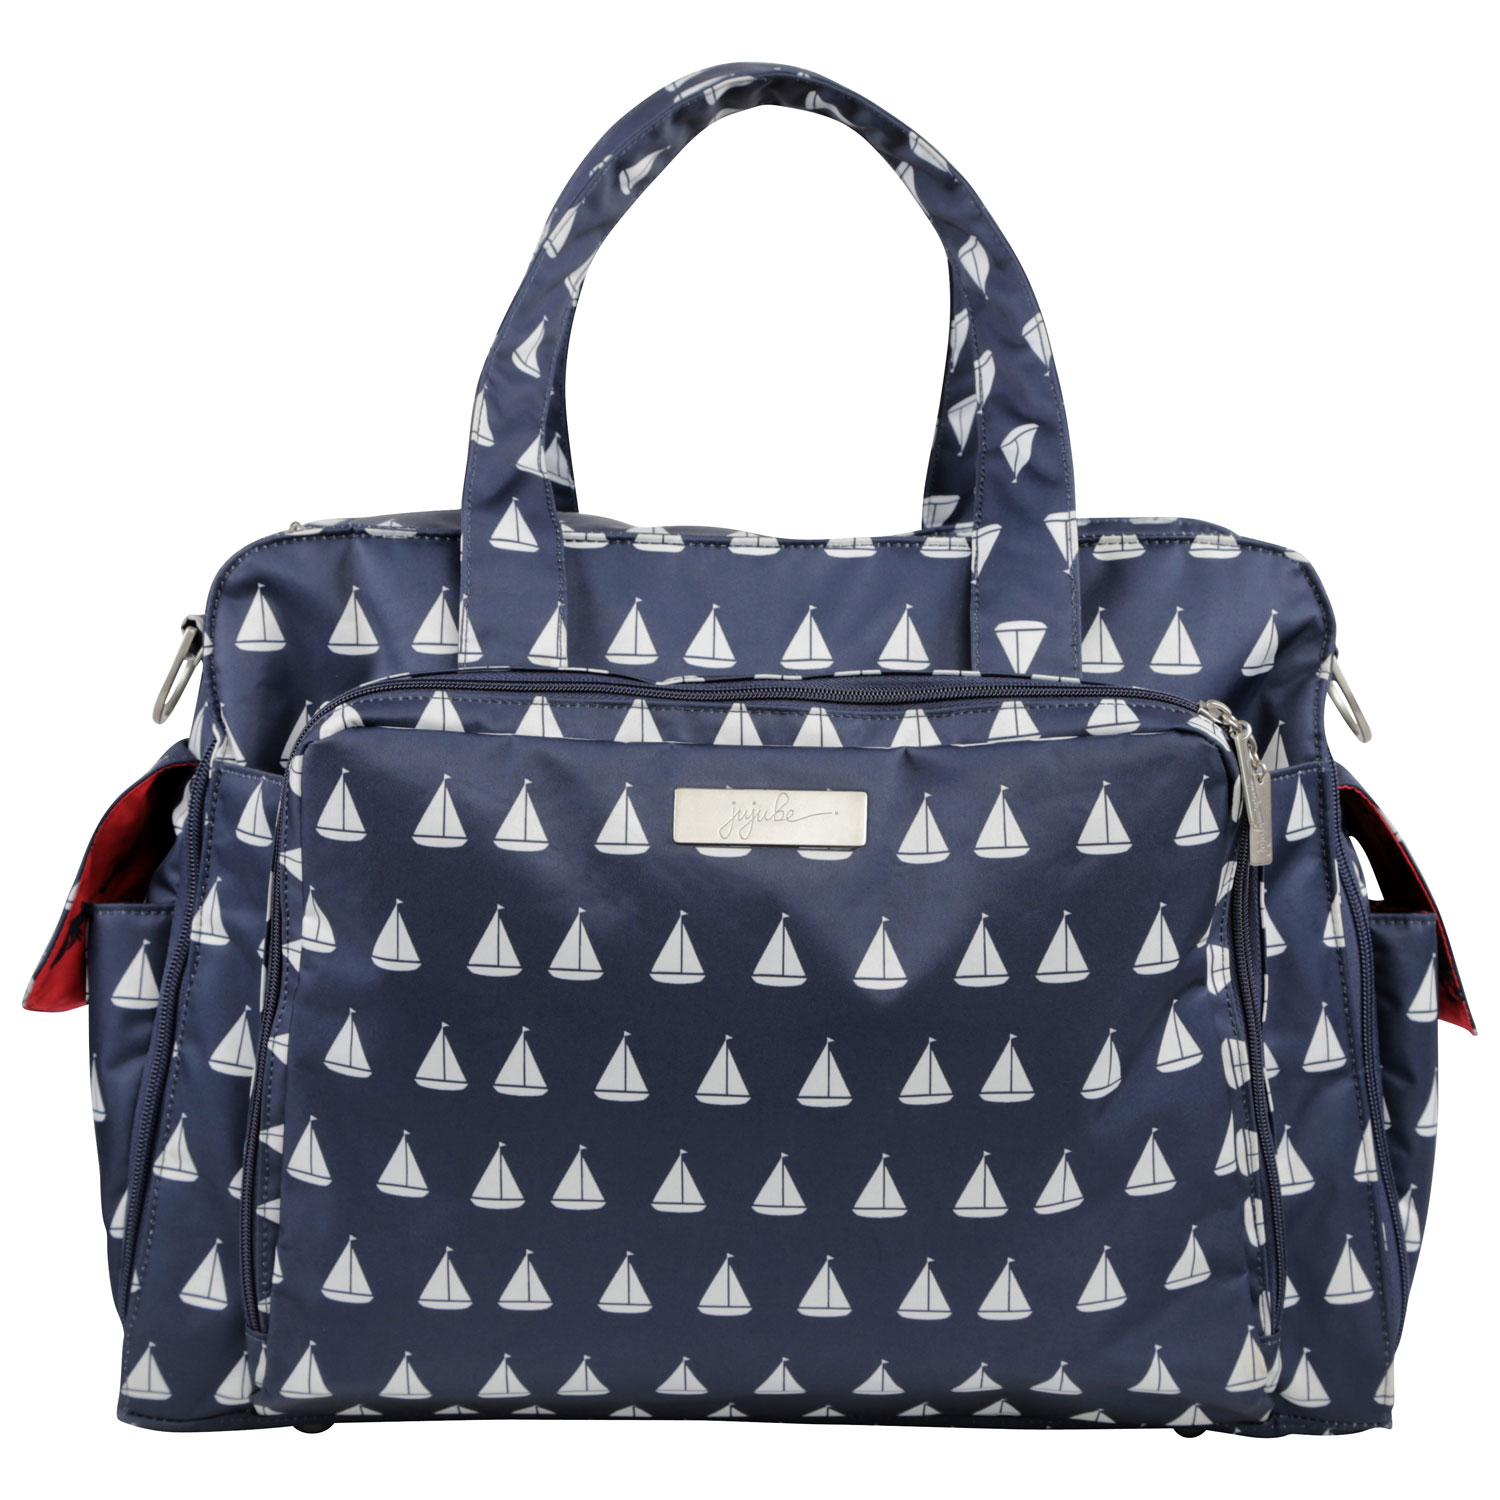 buy for mom or baby - jujube diaper bag